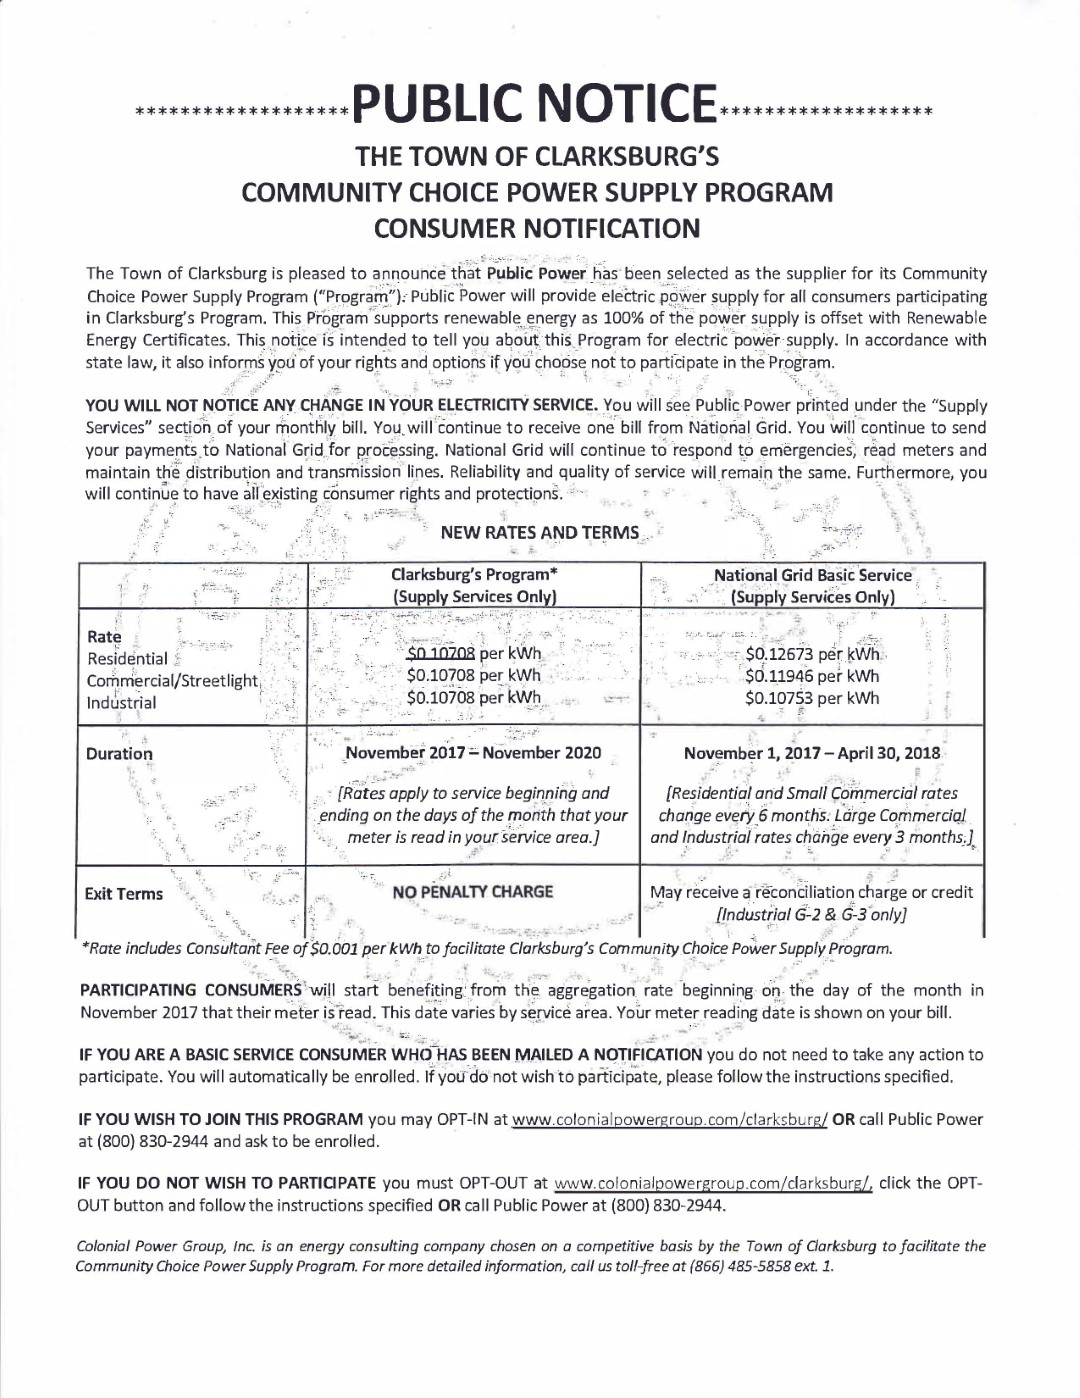 Information about the Community Choice Power Supply Program, downloadable pdf below.